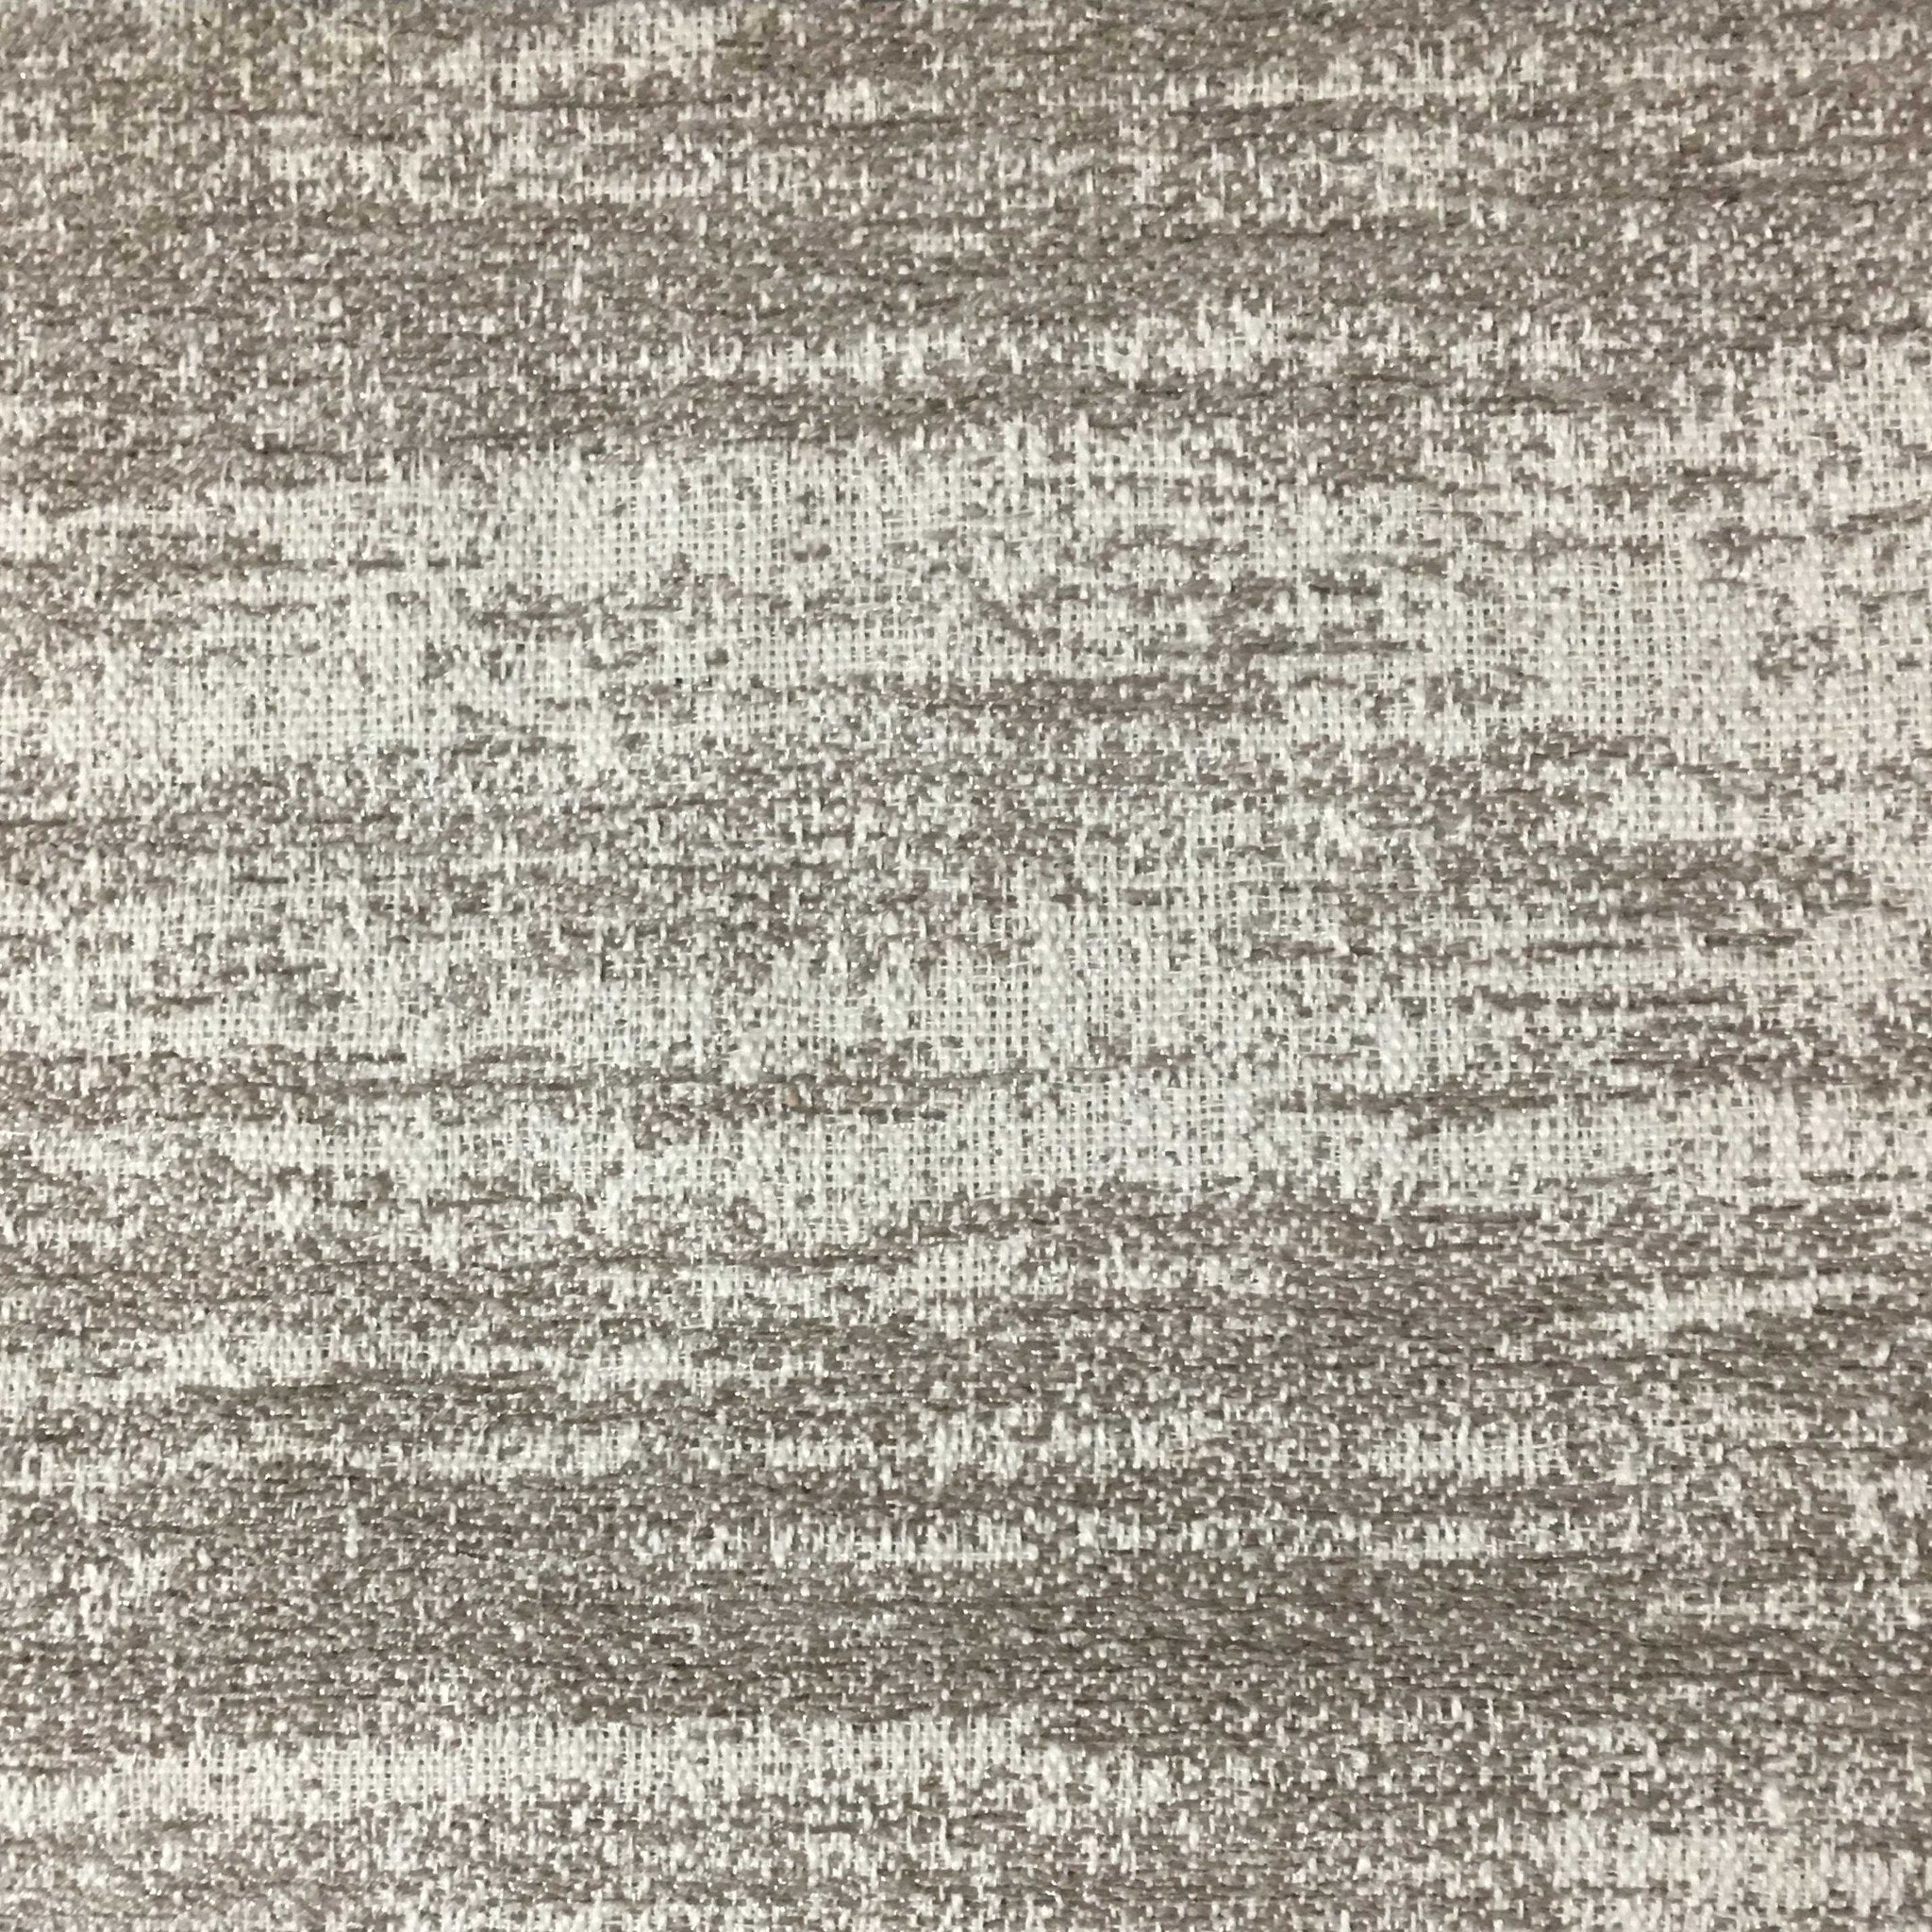 Home Decor Upholstery Fabric Upholstery M7345 Horizon Reef Coral